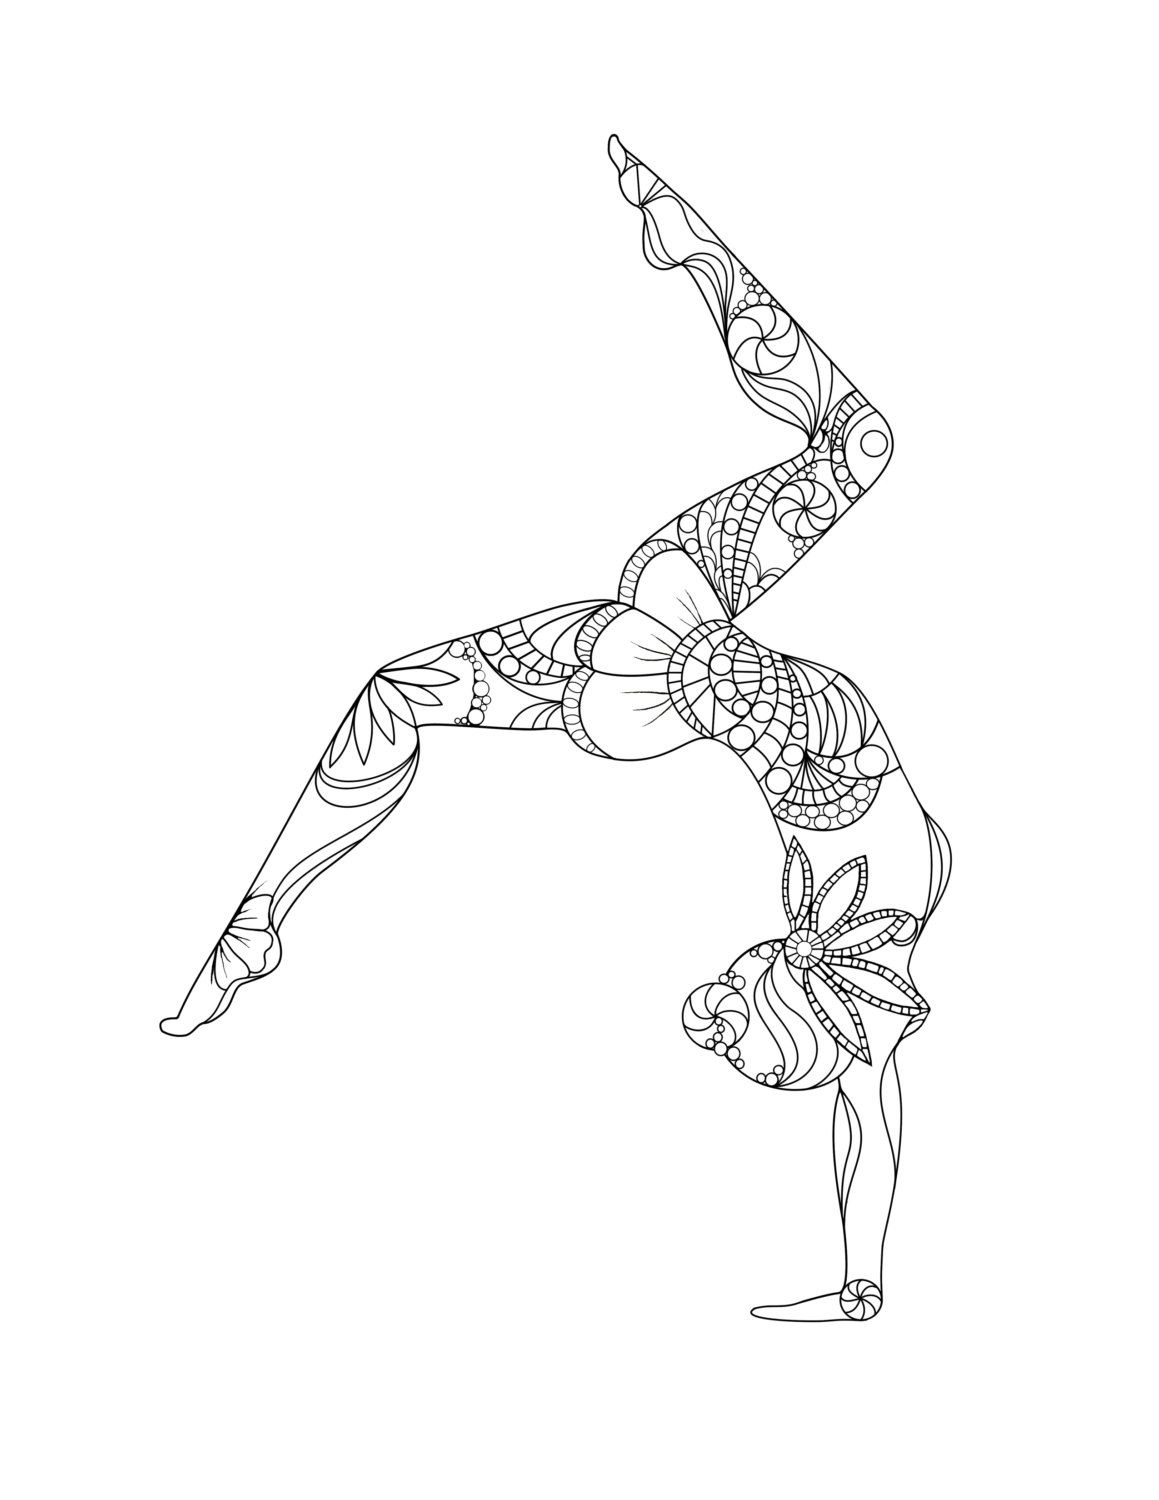 Gymnastics Hard Coloring Pages For Girls